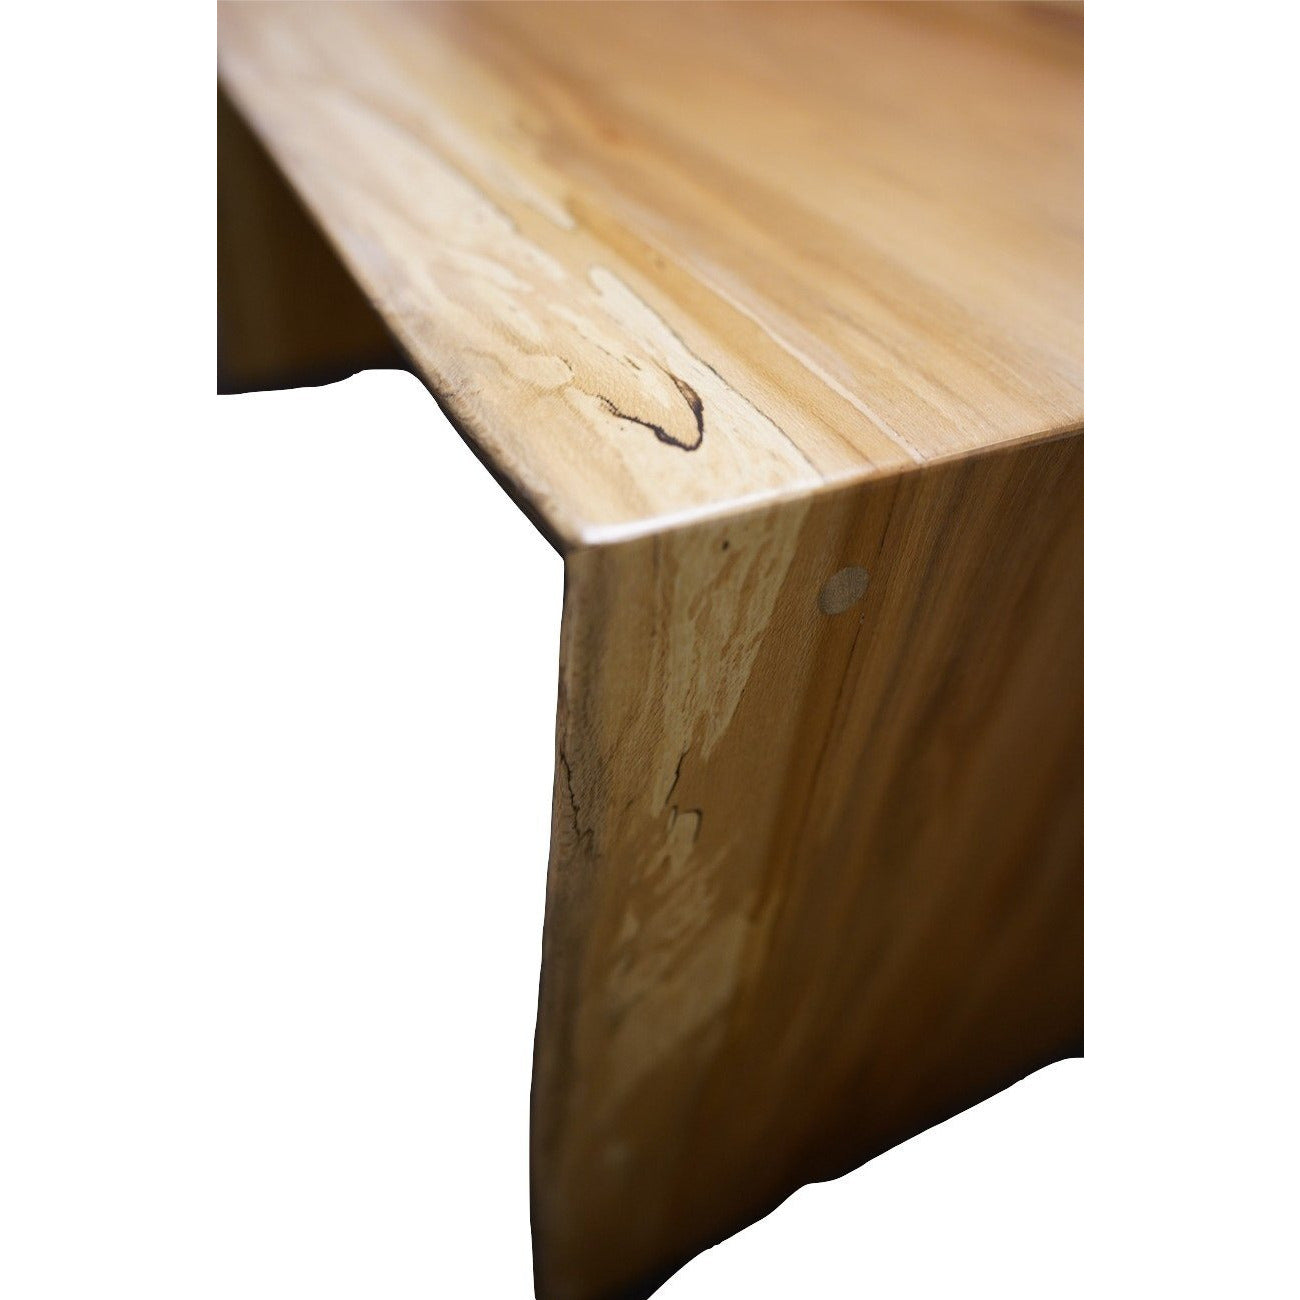 Waterfall Sycamore Side Table (1225)